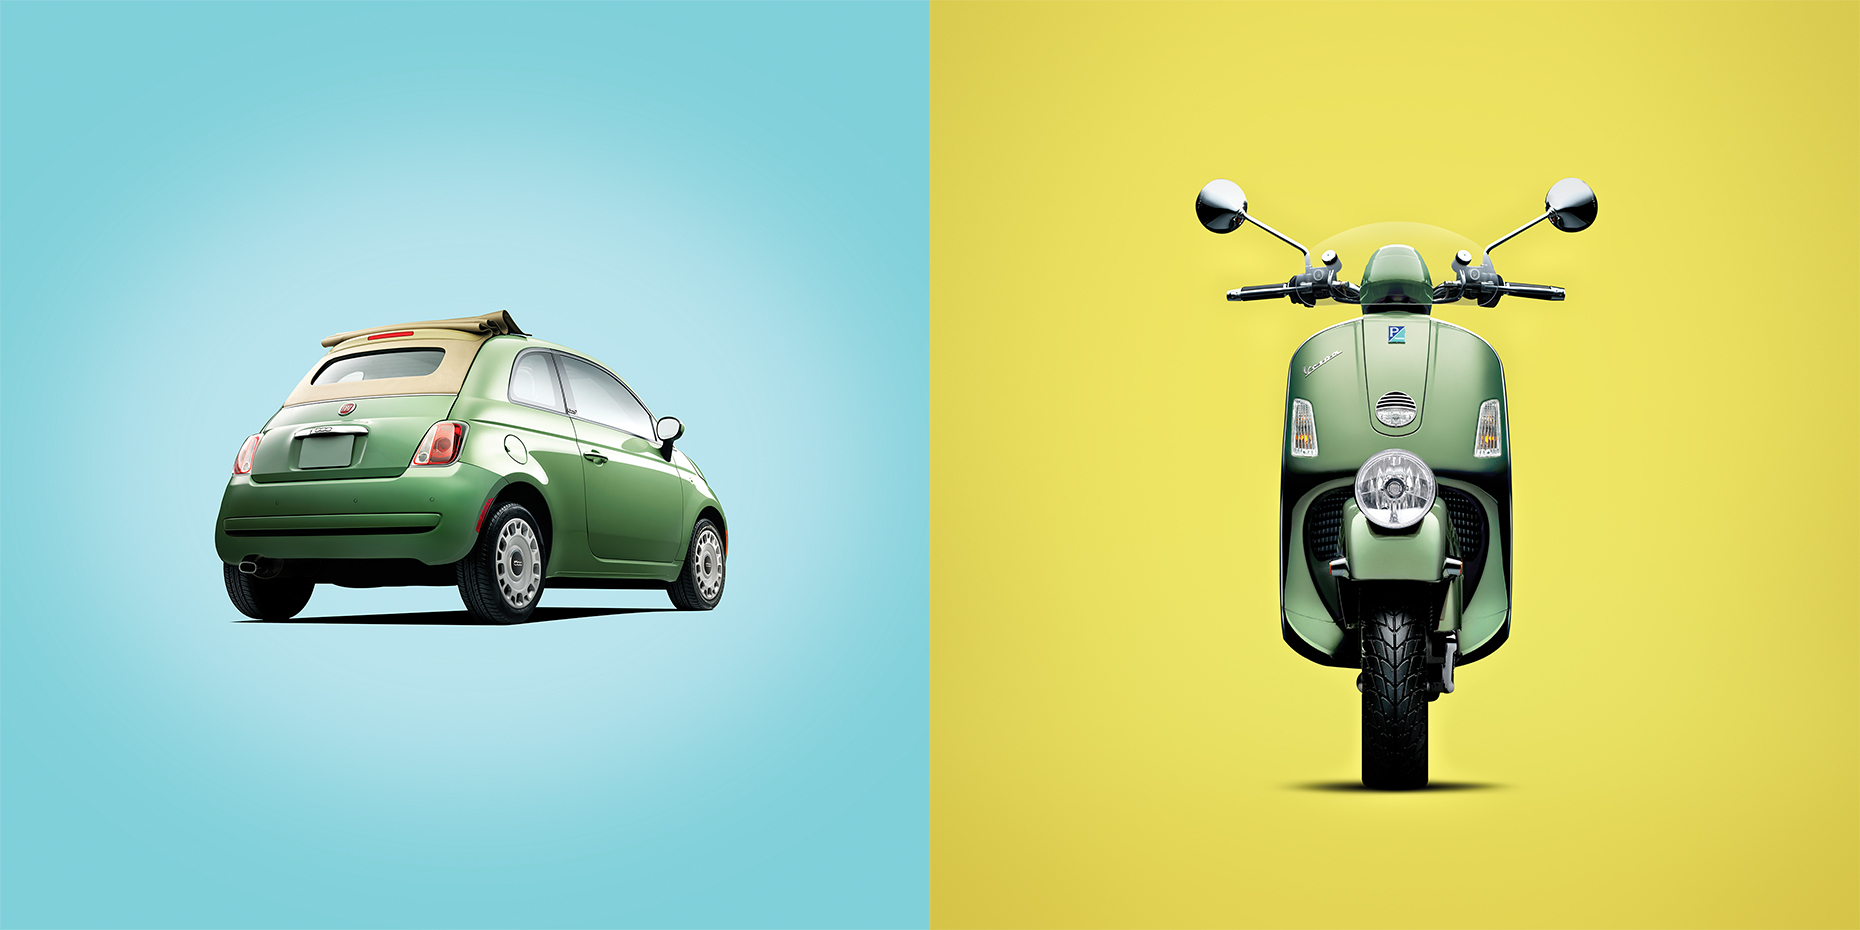 Christopher Nelson Photography|Fiat|Vespa